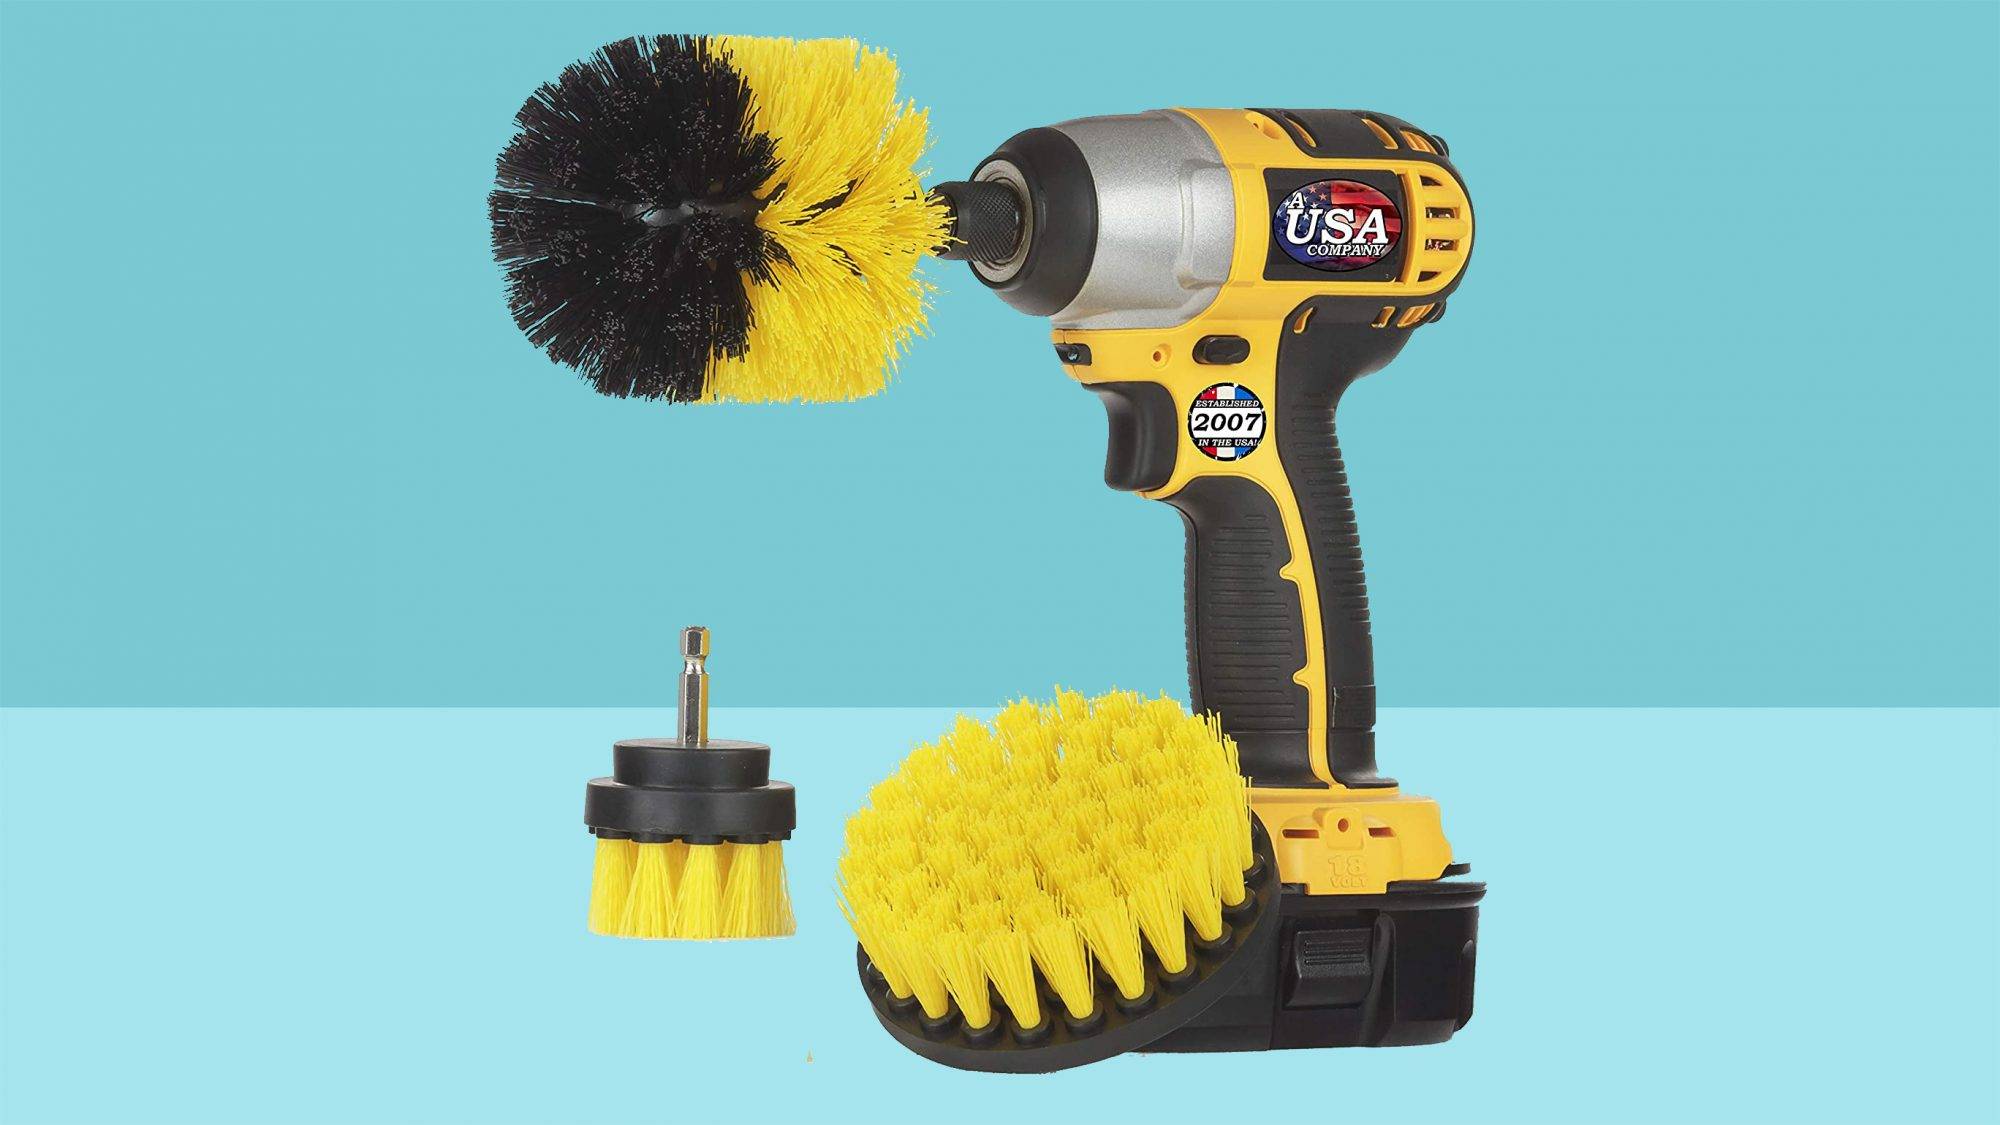 best cleaning organization amazon deals - drill brush